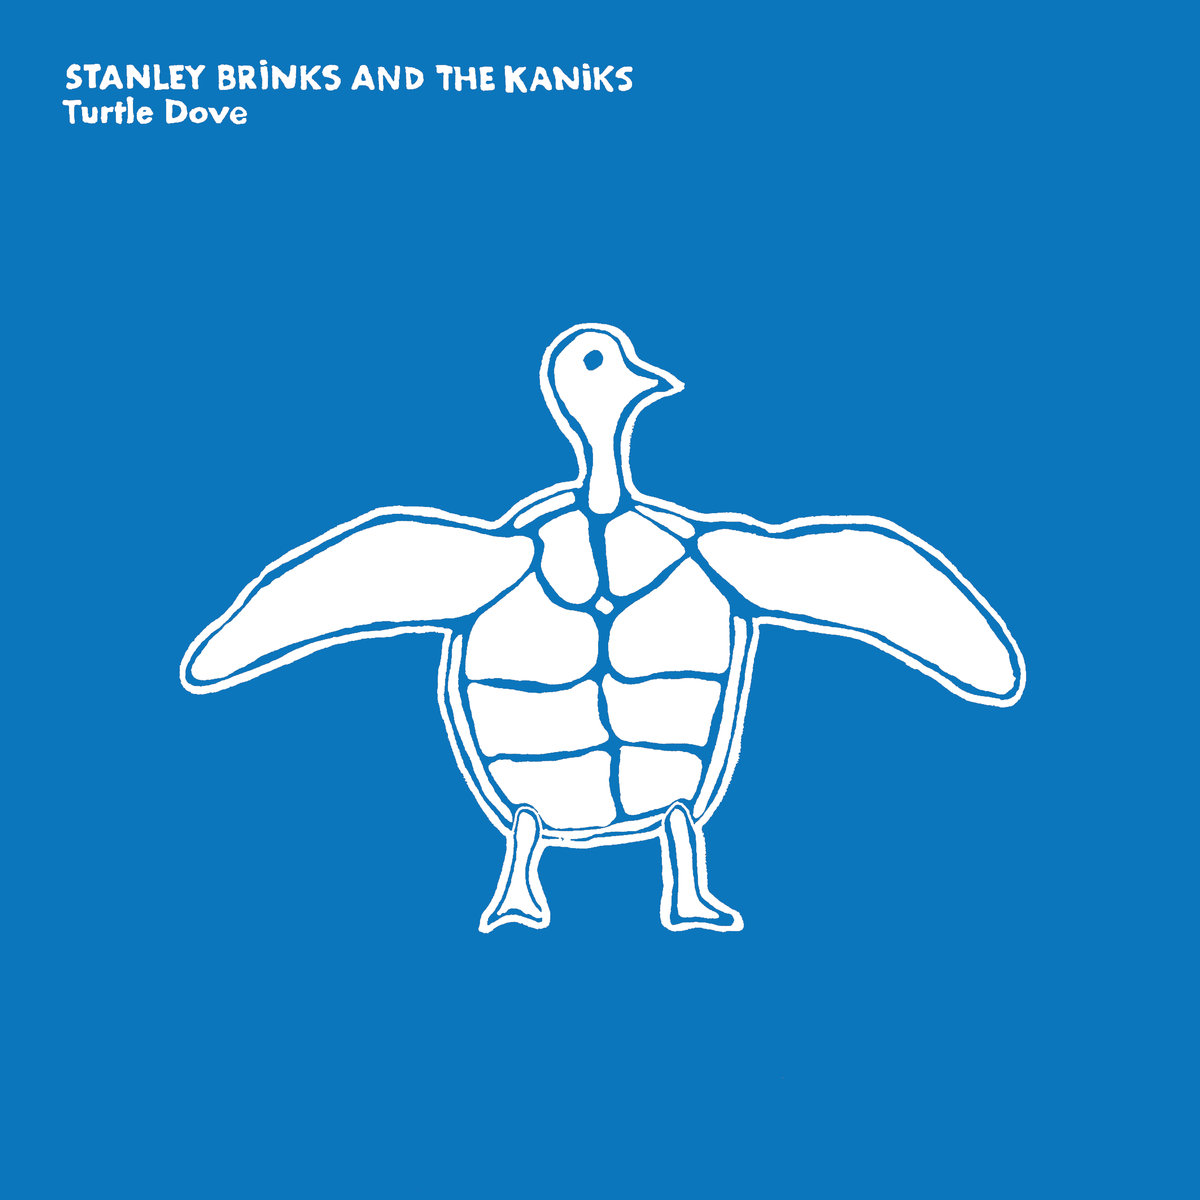 Stanley Brinks And The Kaniks: